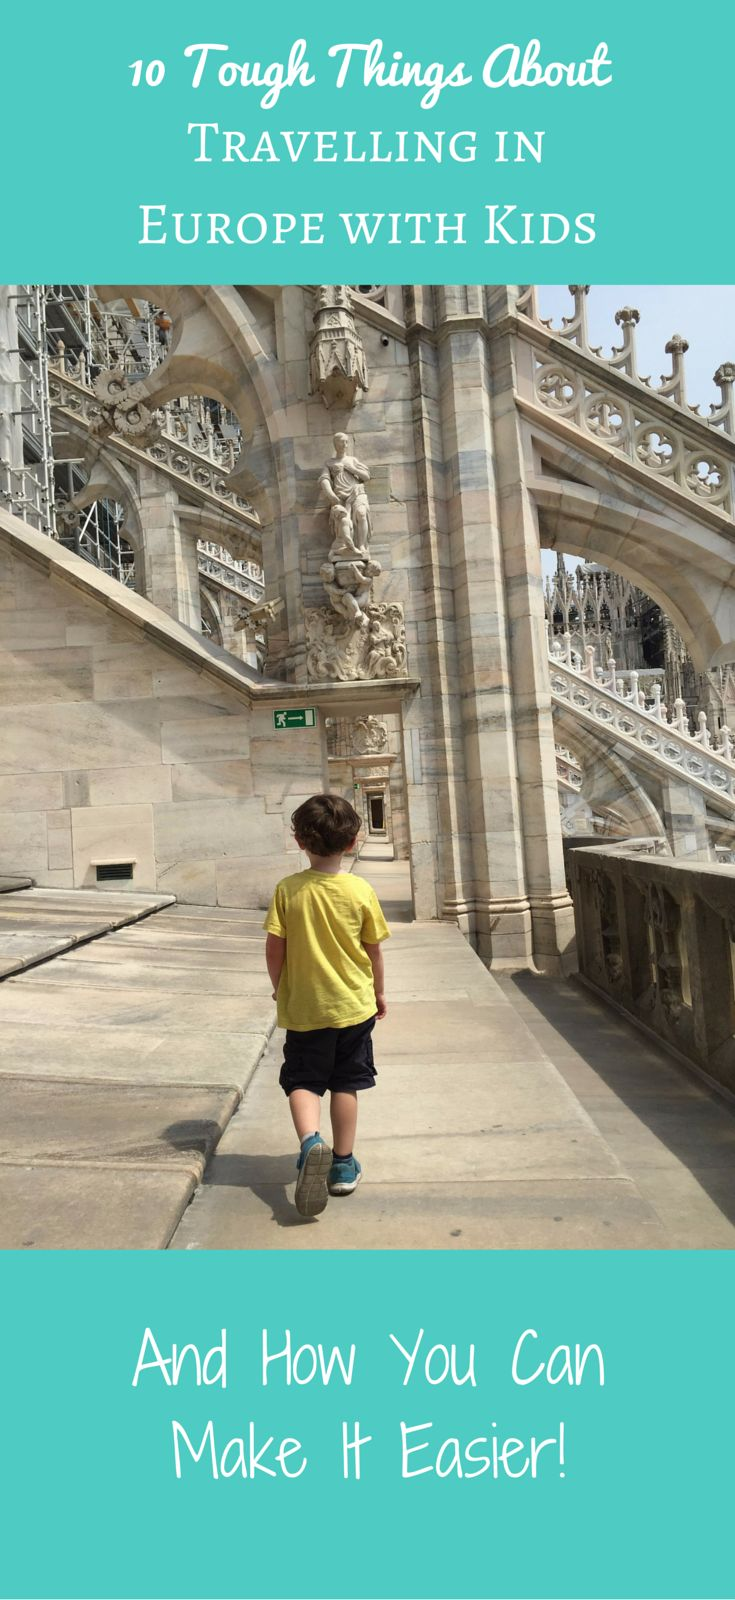 Travelling in Europe with kids isn't always easy. There are some aspects which are tough but we've found solutions to almost all the difficulties we faced while on a family vacation to Europe with small children.